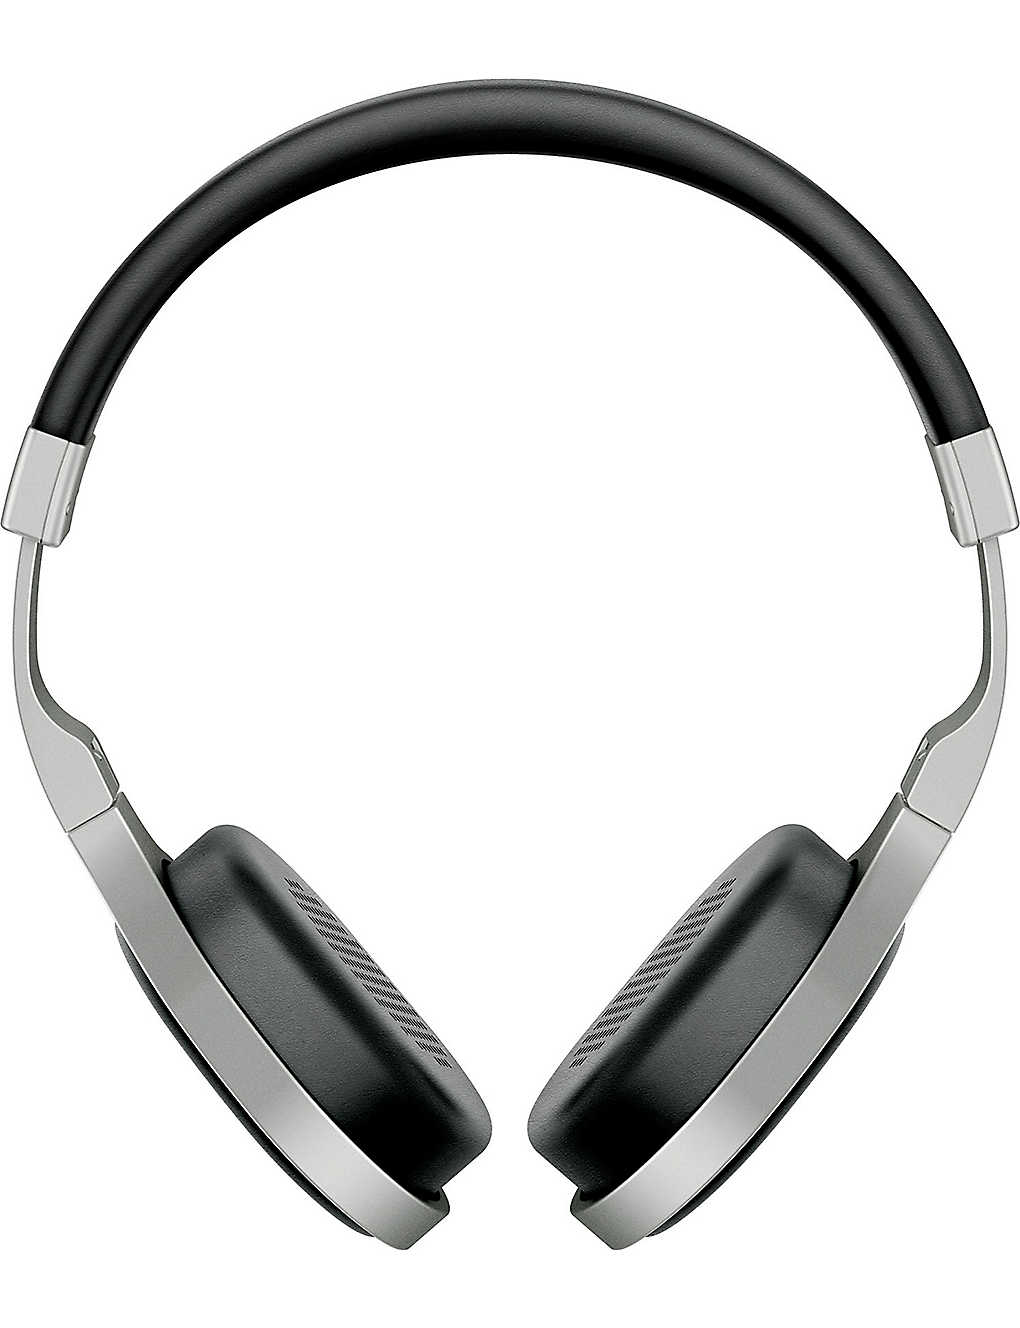 af0c9f029f9 KEF - M500 Hi-Fi on-ear headphones | Selfridges.com